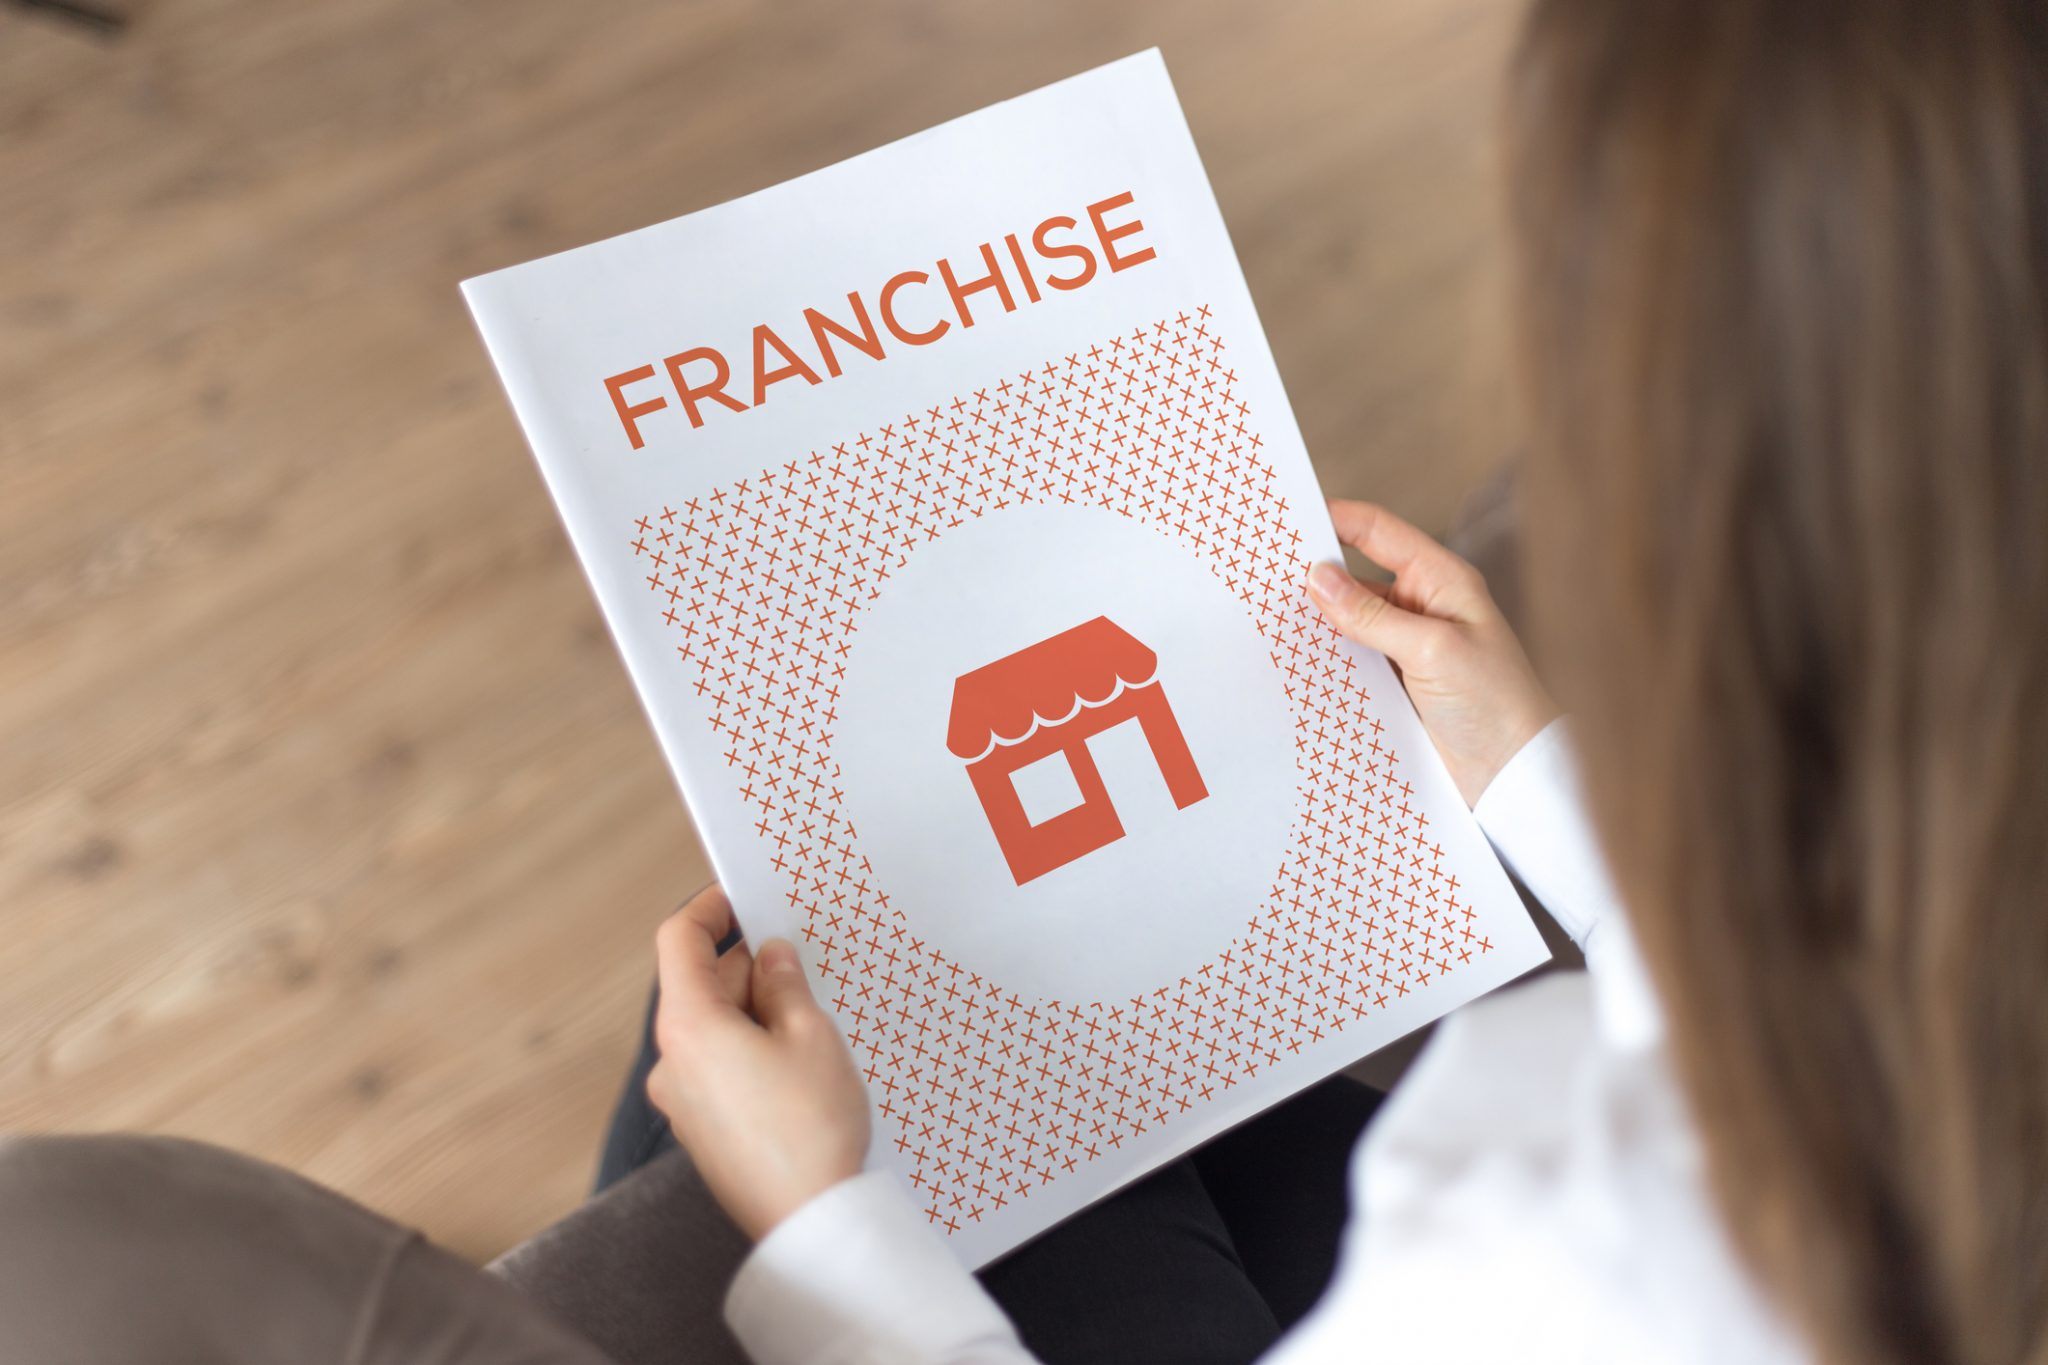 specialstrong- female reading about franchise